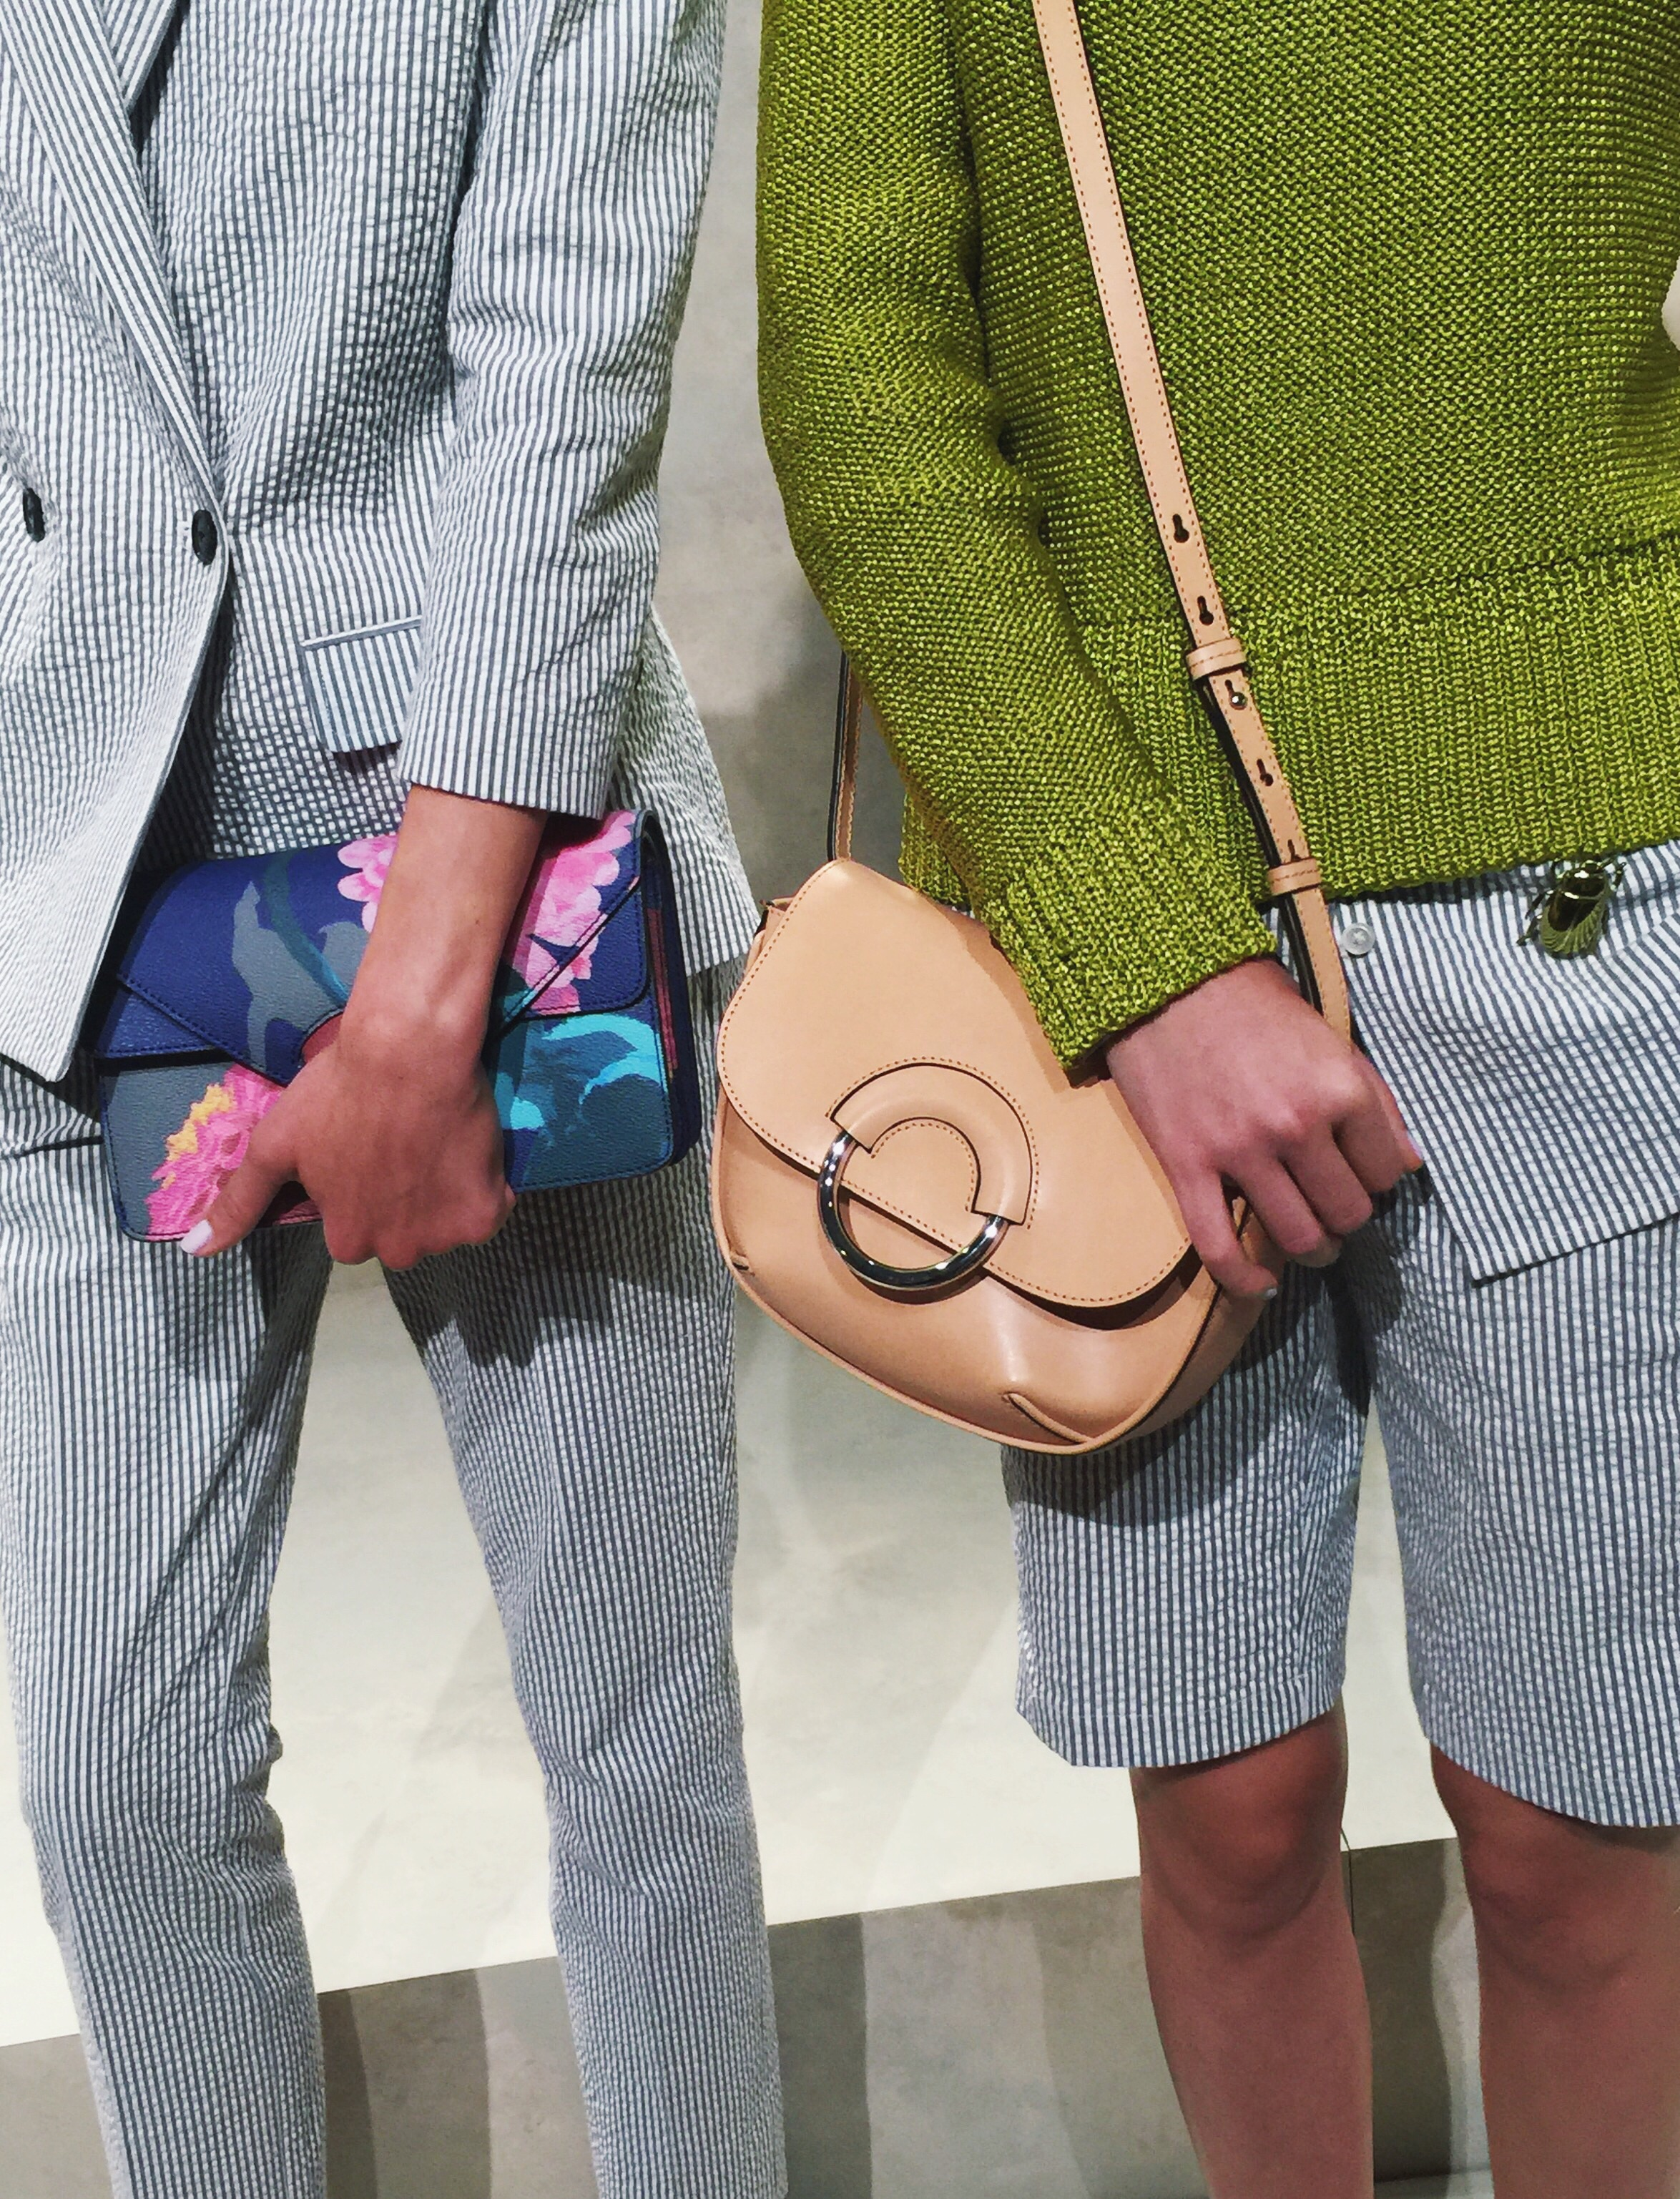 Seersucker (for both men & women), crossbody bags and patterned clutches.